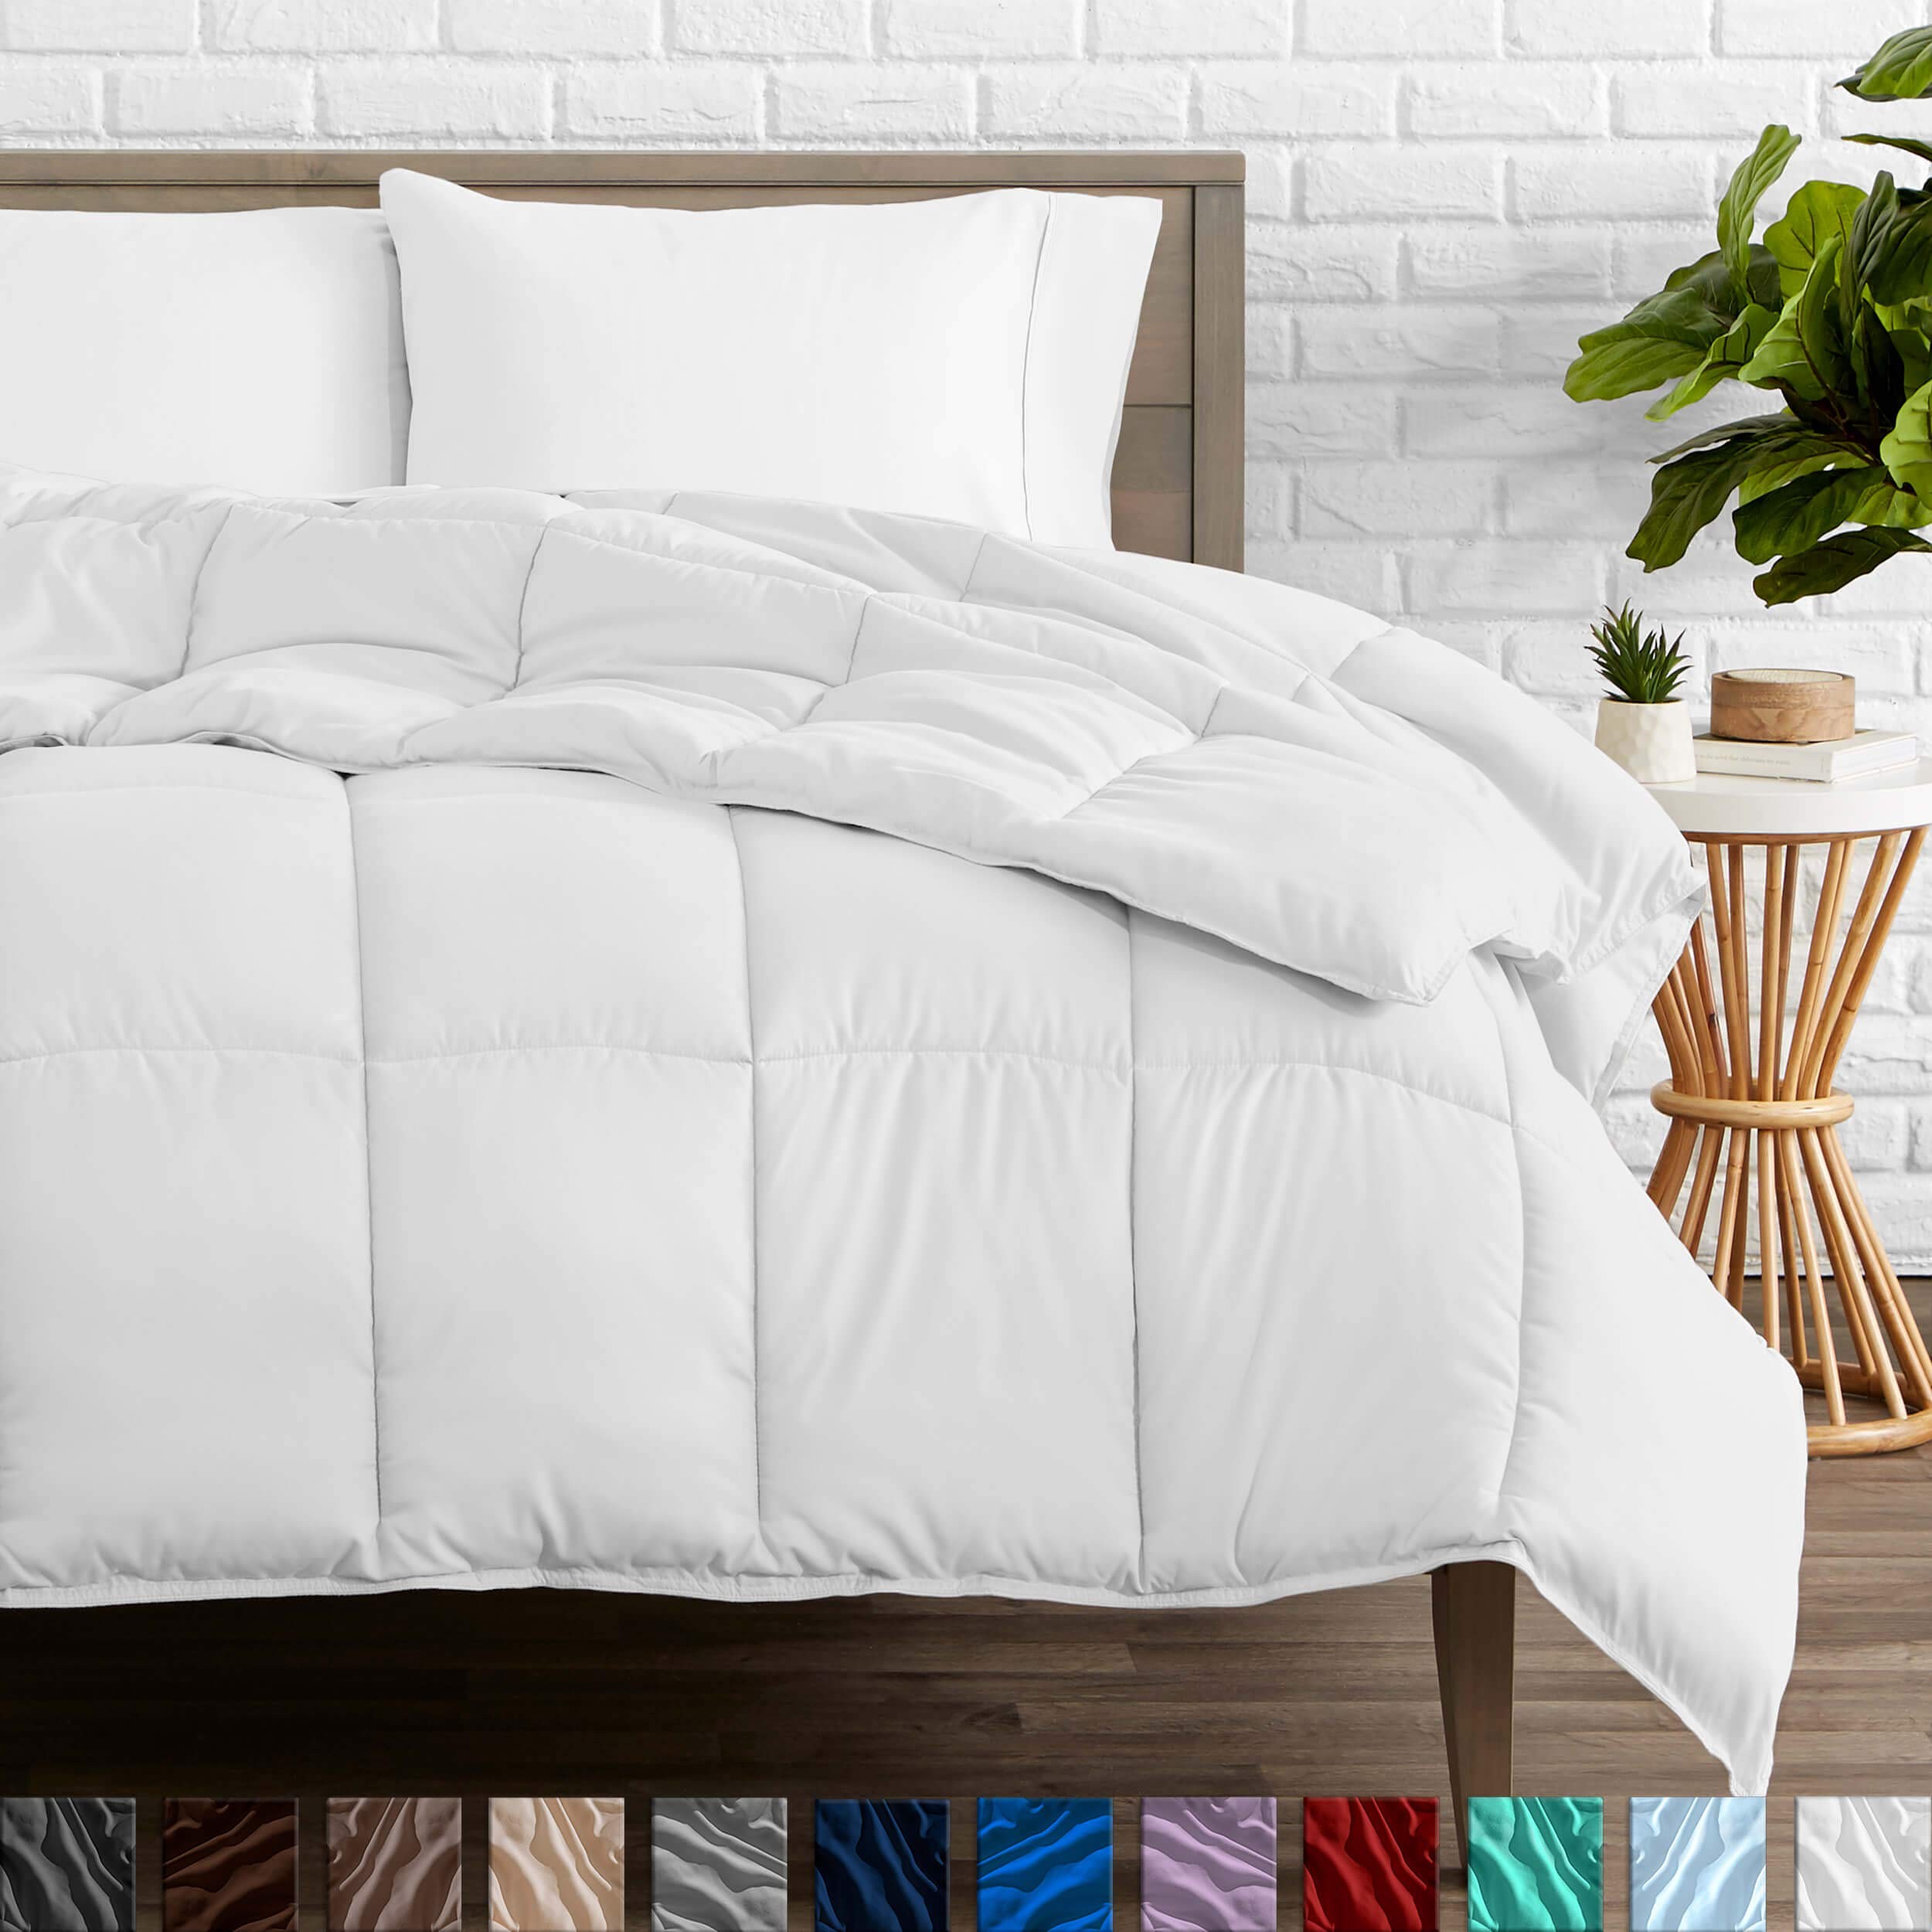 Bare Home Duvet Insert Comforter - King/California King - Goose Down Alternative - Ultra-Soft - Premium 1800 Series - Hypoallergenic - All Season Breathable Warmth (King/Cal King, White) by Bare Home